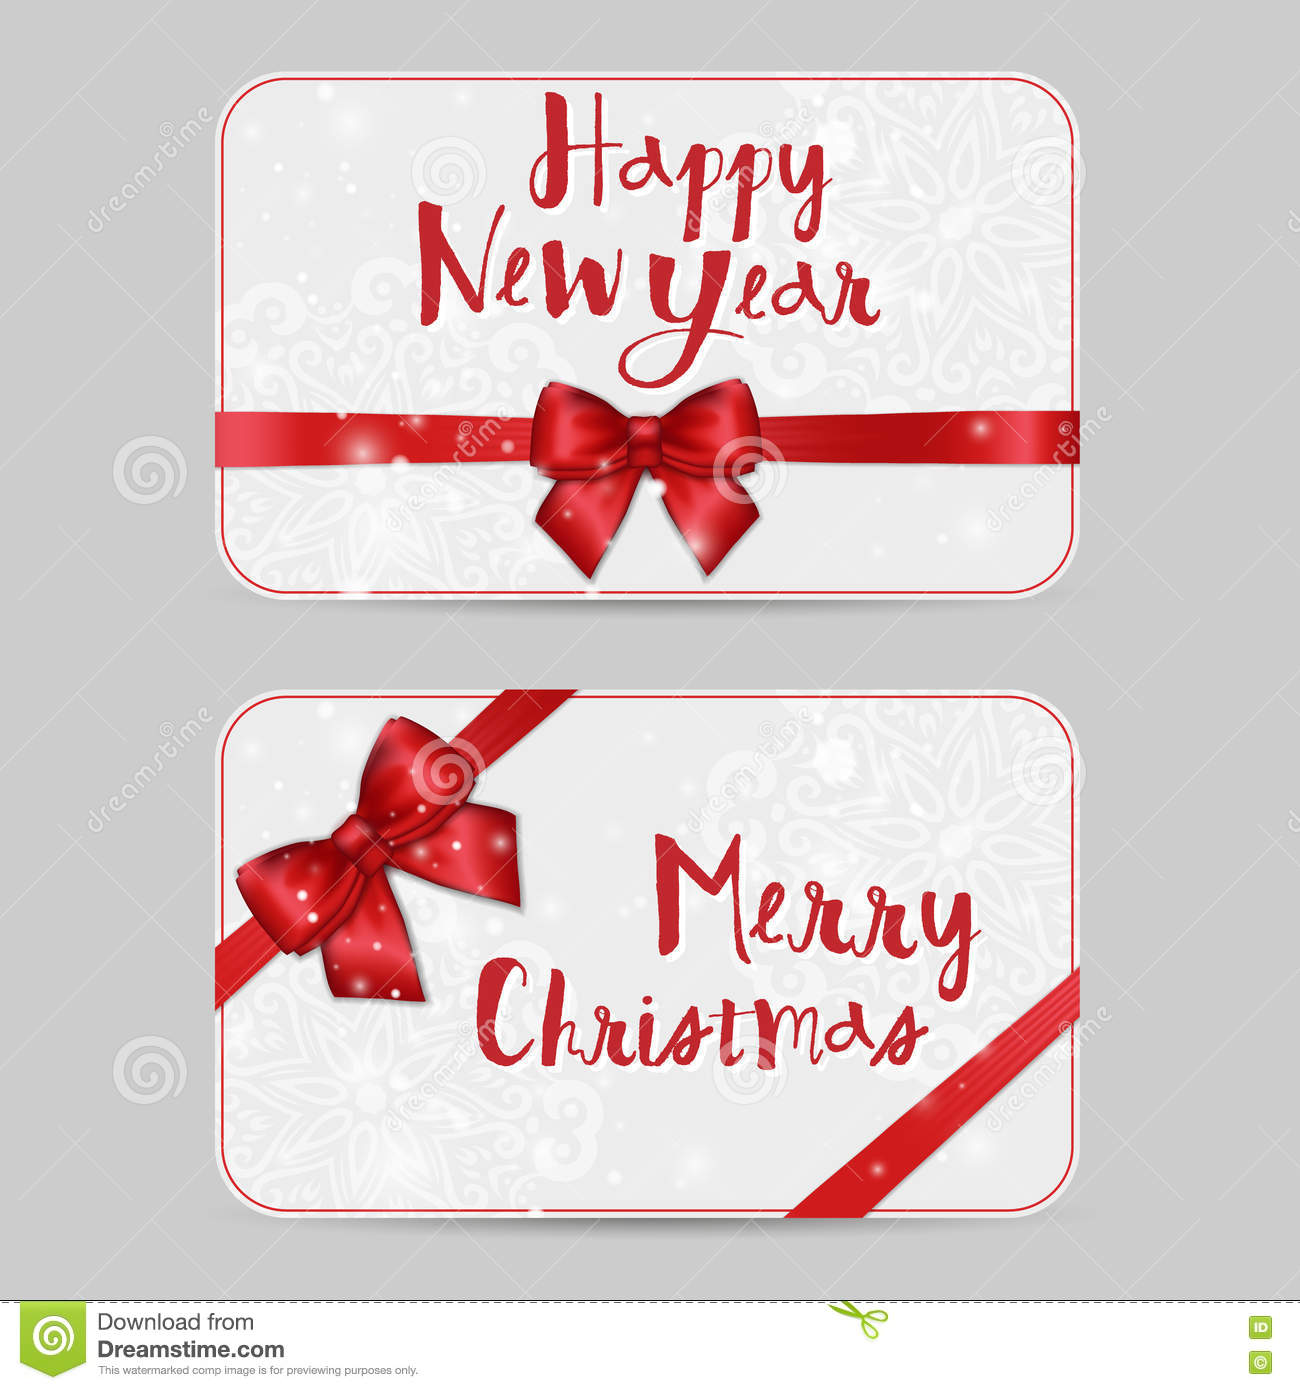 vector new year template for greetings invitations cards vouchers gift cards